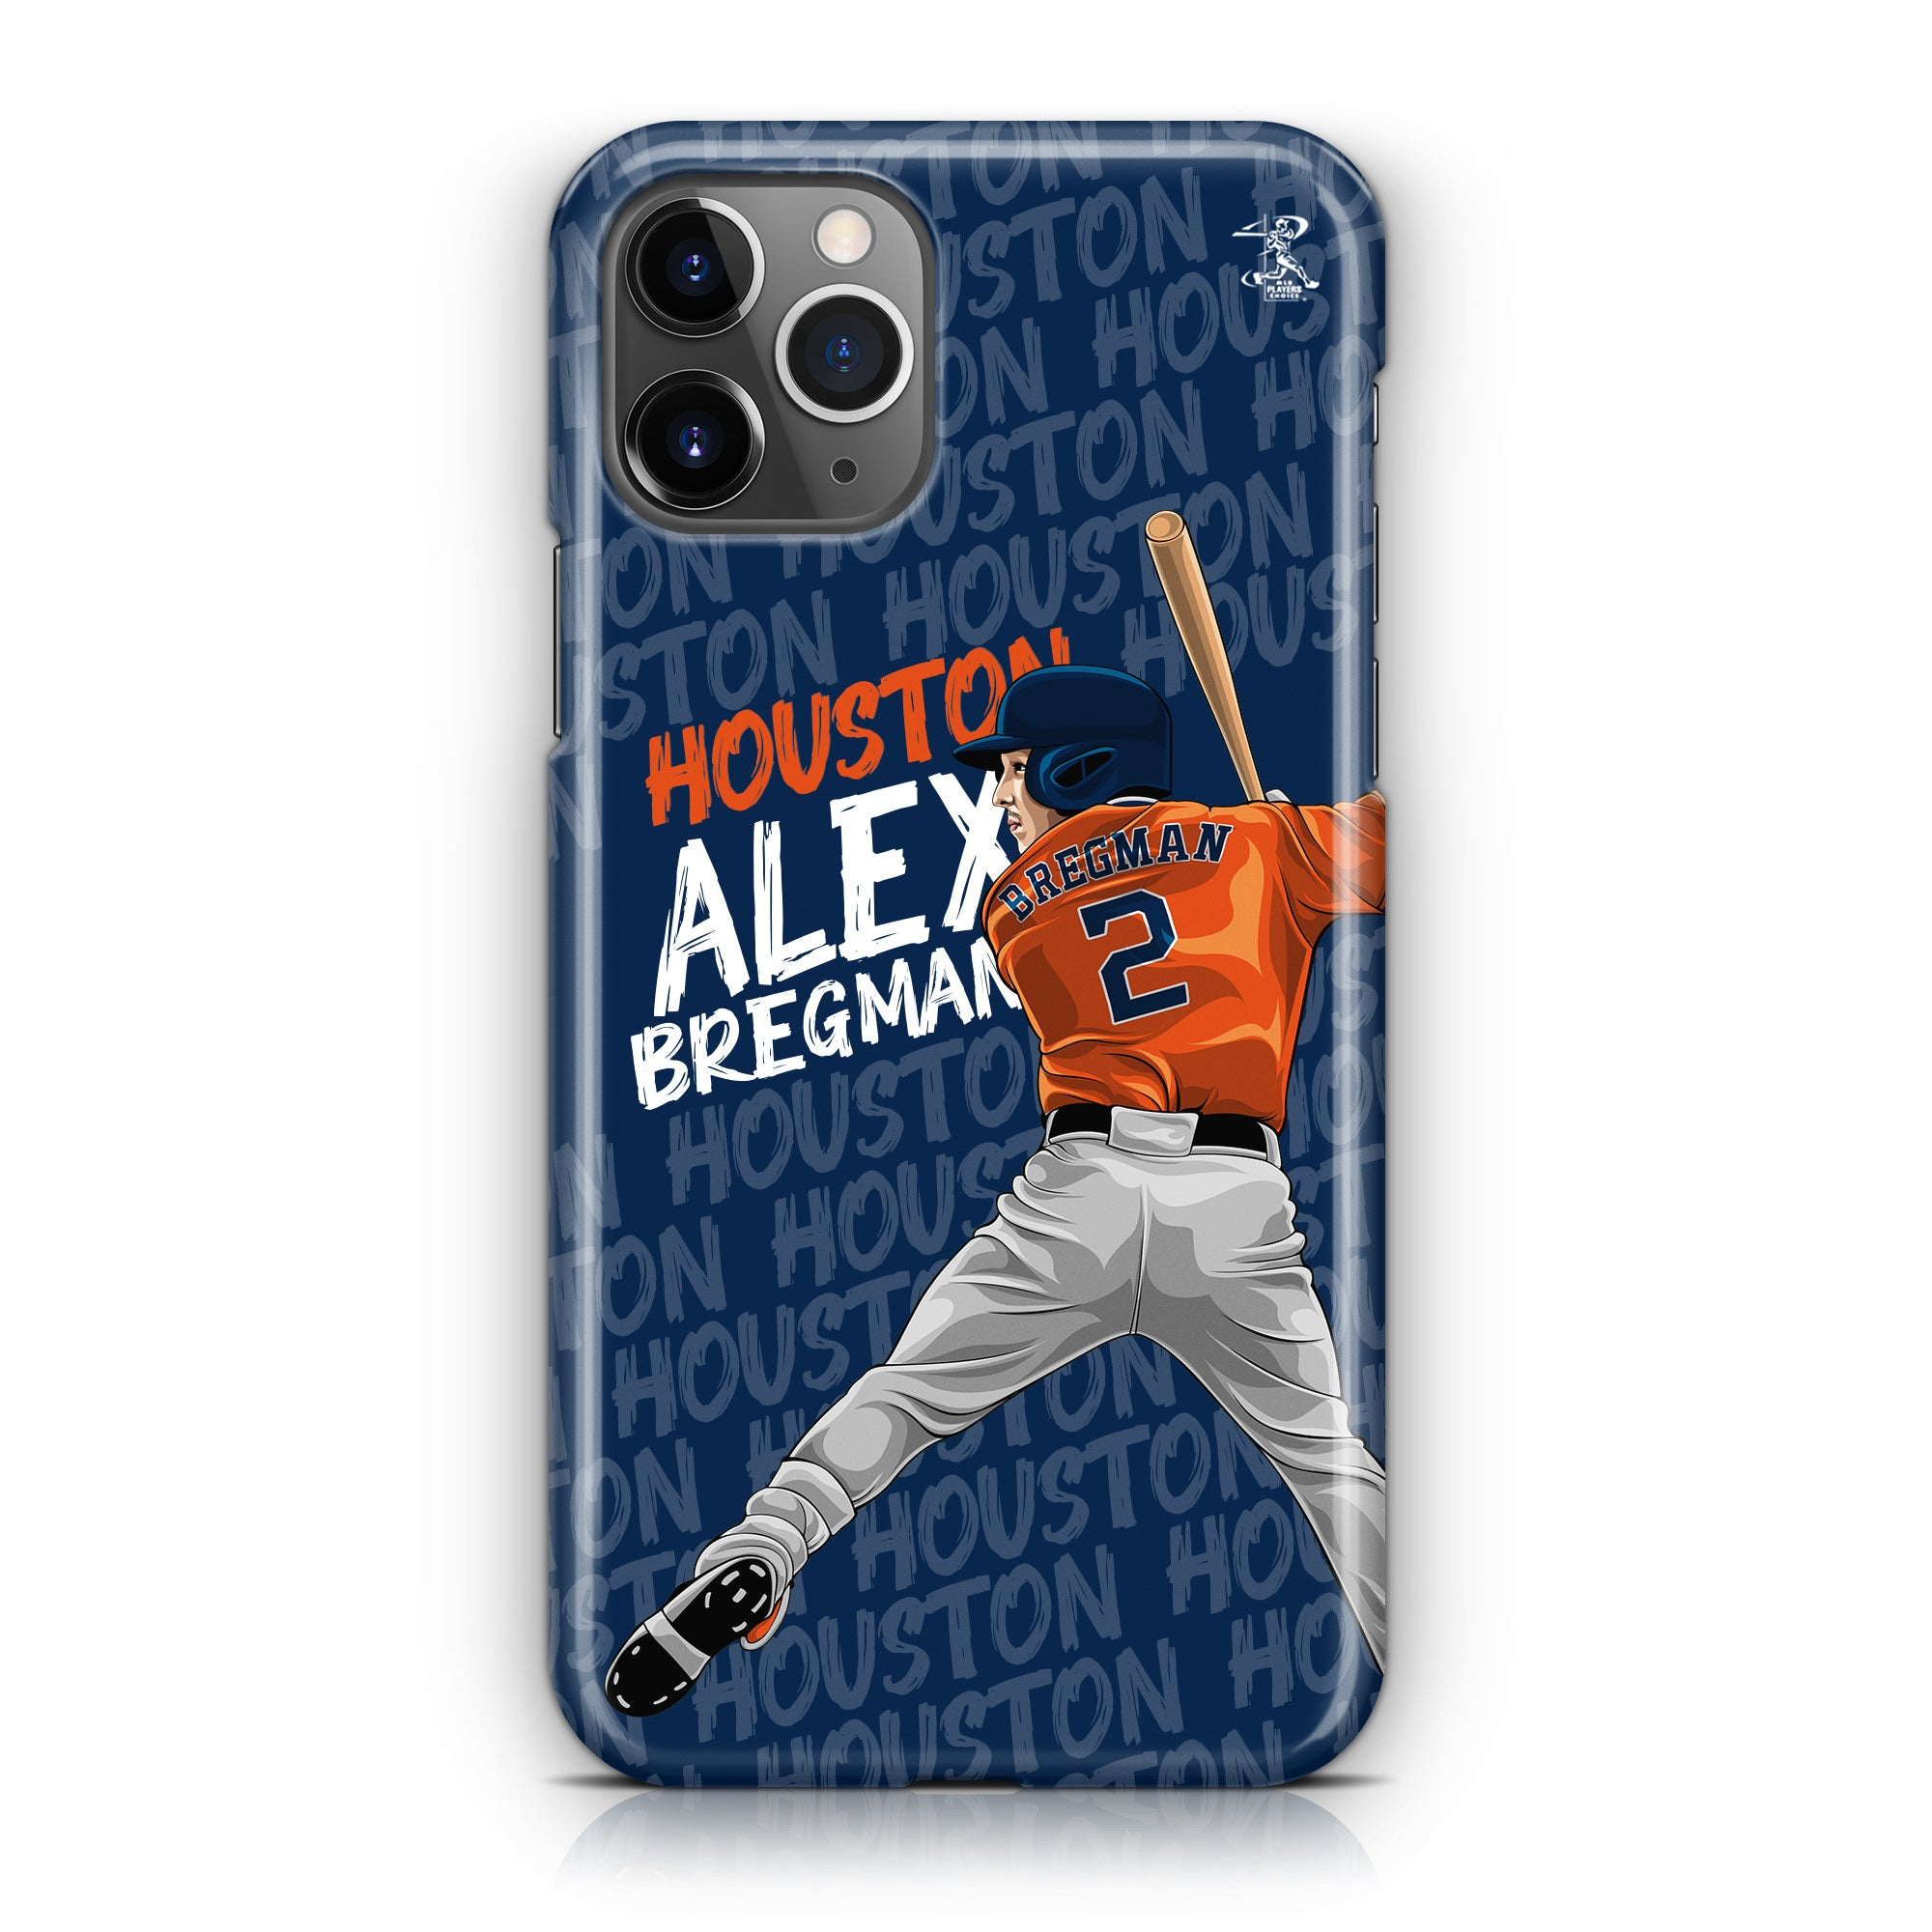 Bregman Star Series 2.0 Case